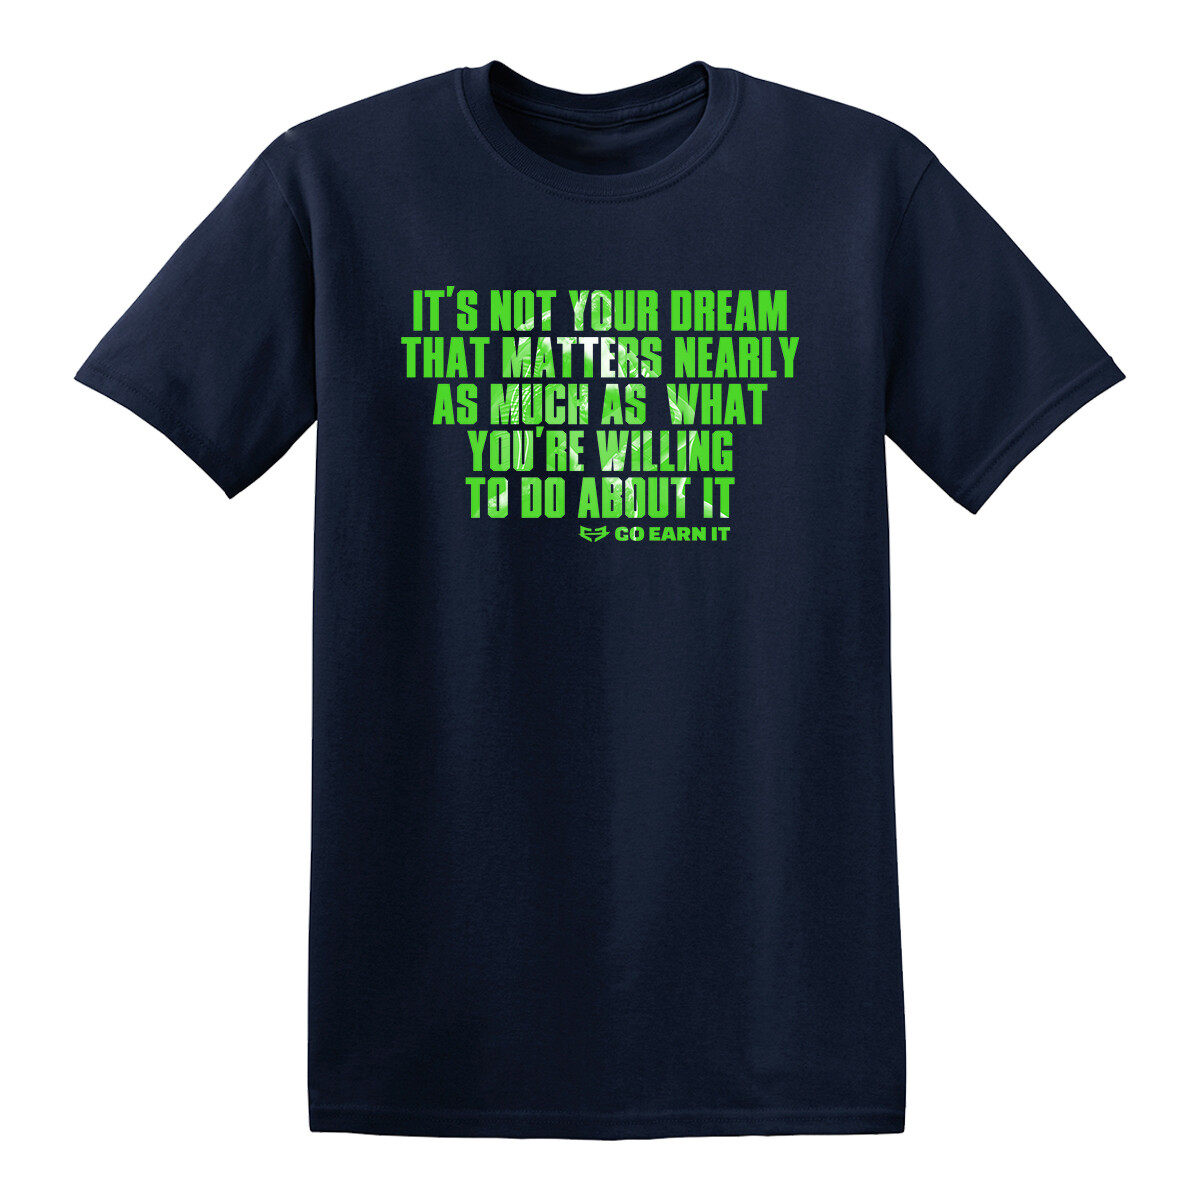 DREAMS INTO REALITY GRAPHIC TEE